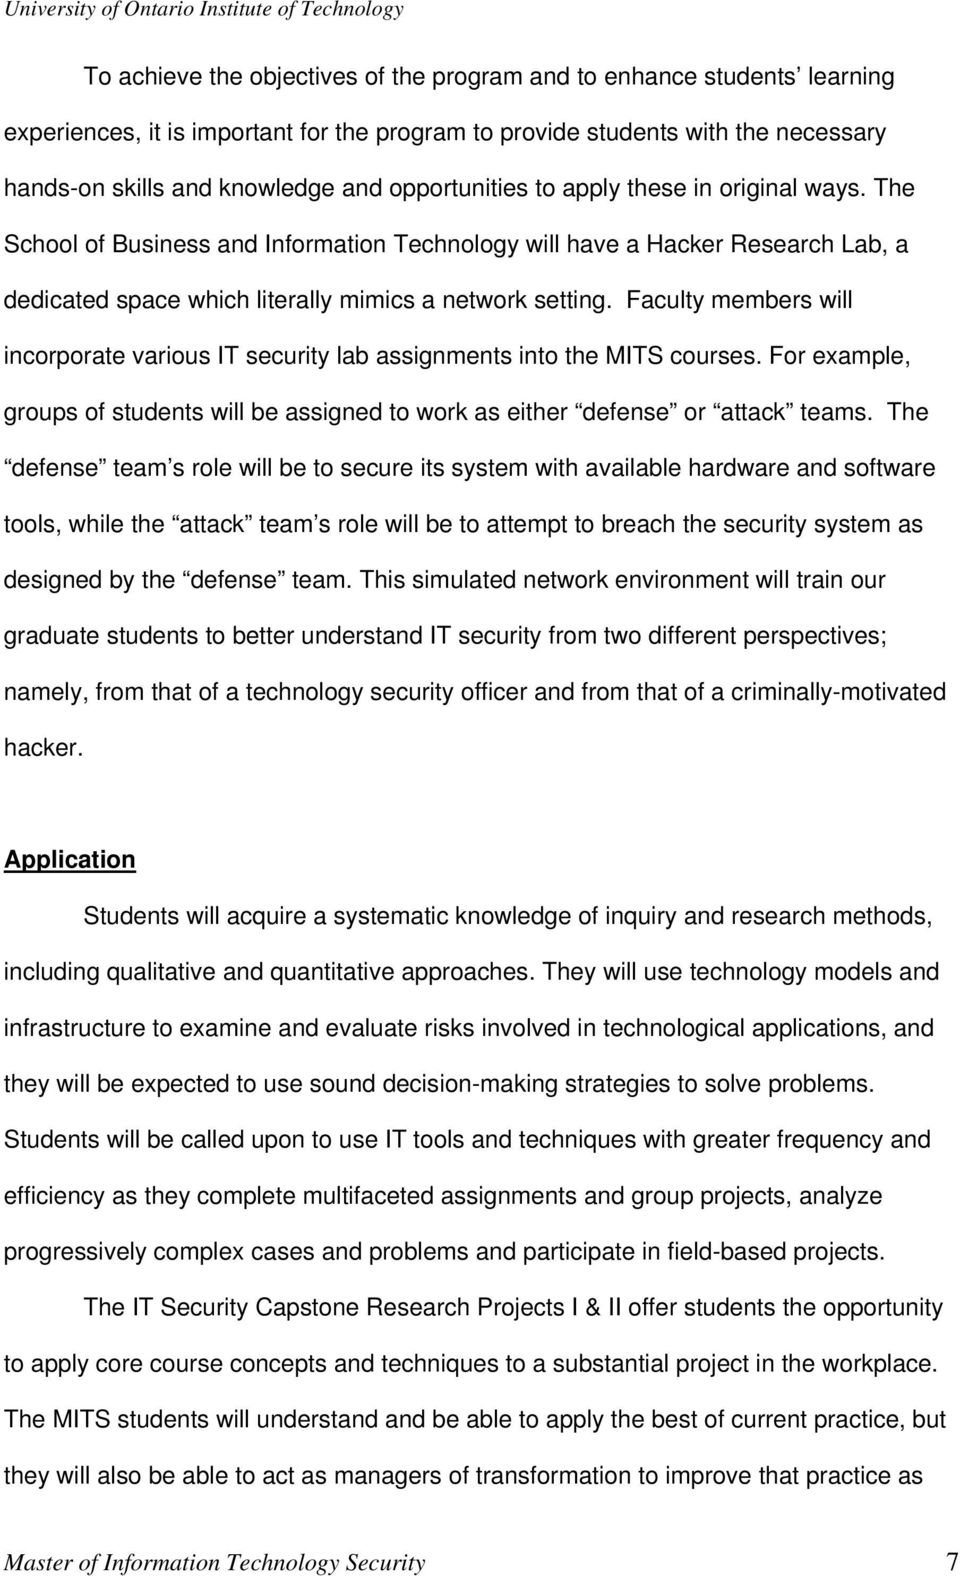 Faculty members will incorporate various IT security lab assignments into the MITS courses. For example, groups of students will be assigned to work as either defense or attack teams.